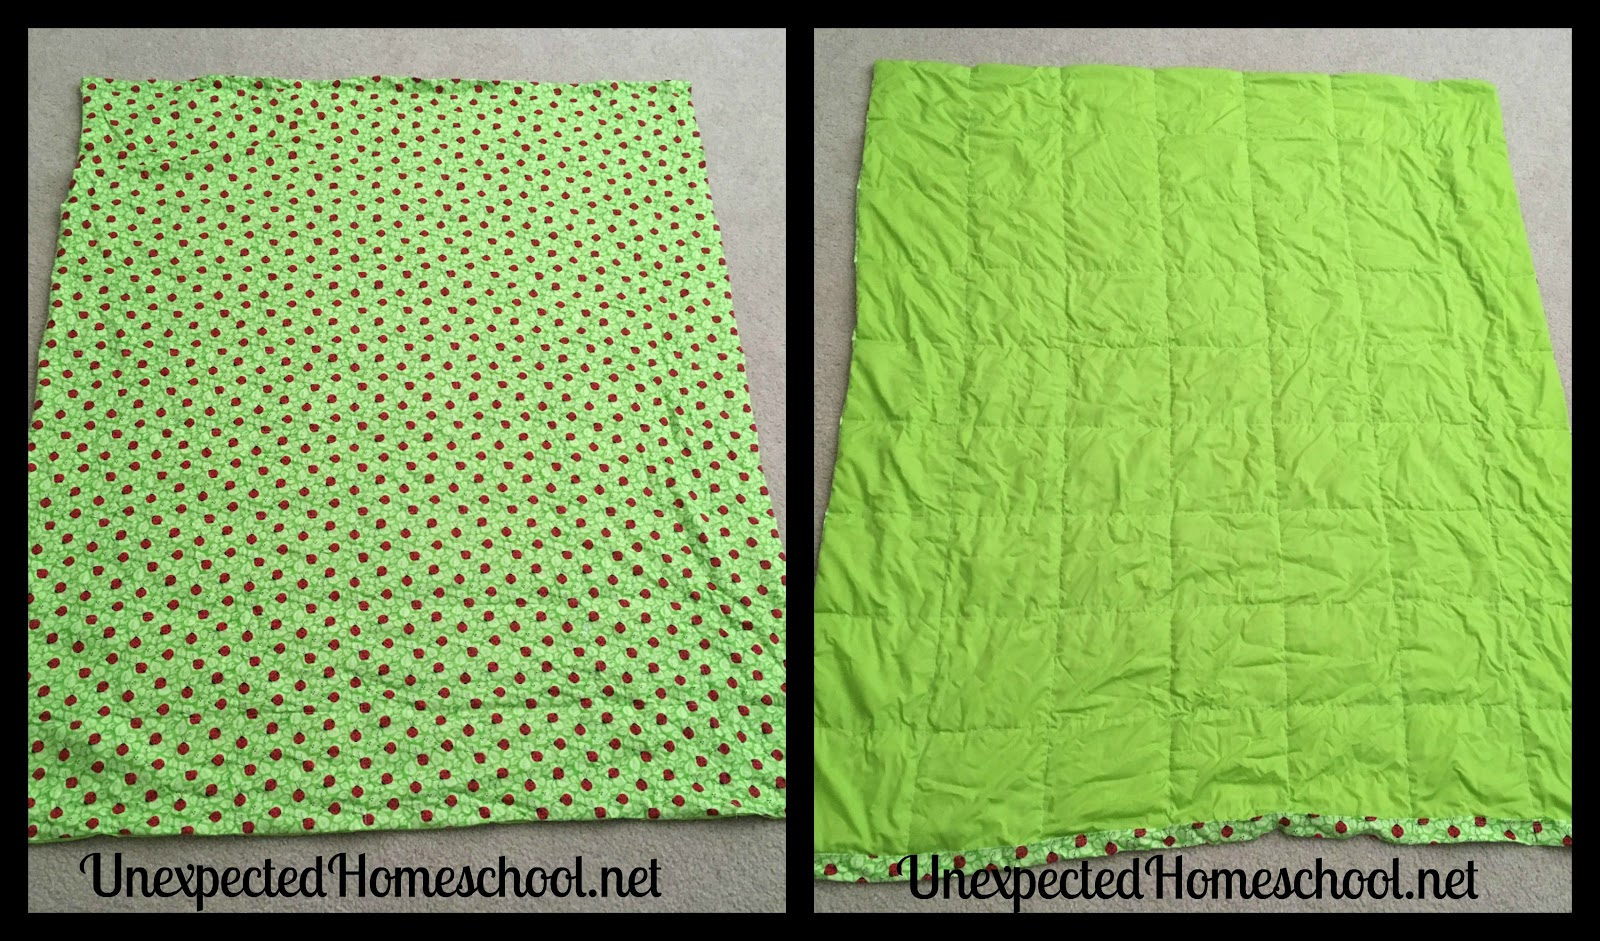 Unexpected Homeschool Weighted Blanket Sewing Instructions